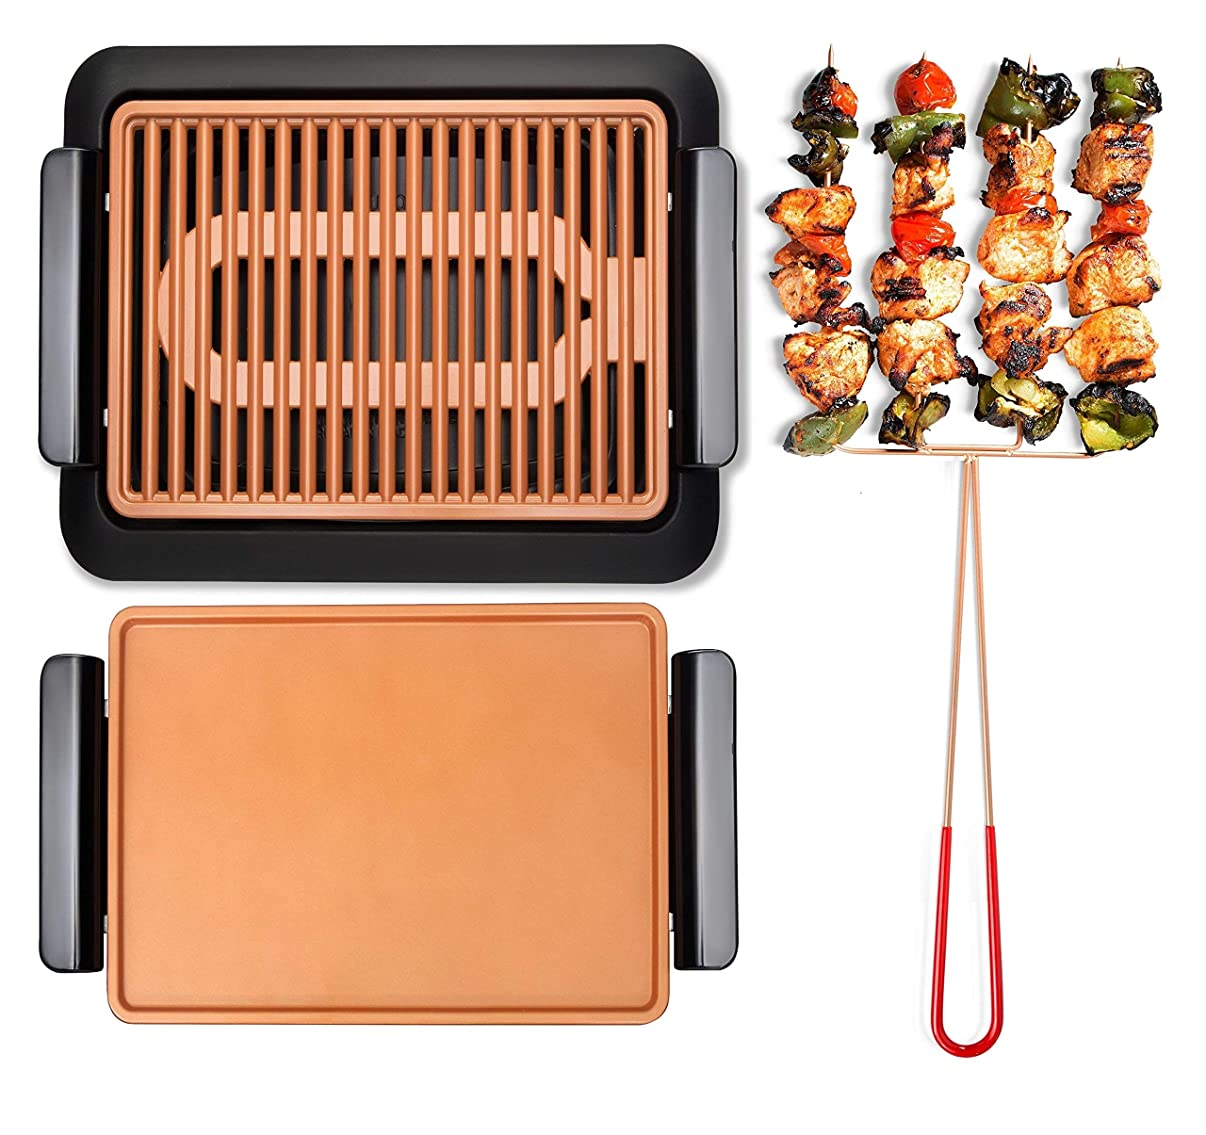 GOTHAM STEEL Smokeless Electric Grill, Griddle, and Pitchfork, Indoor BBQ and Nonstick As Seen On TV (Original)